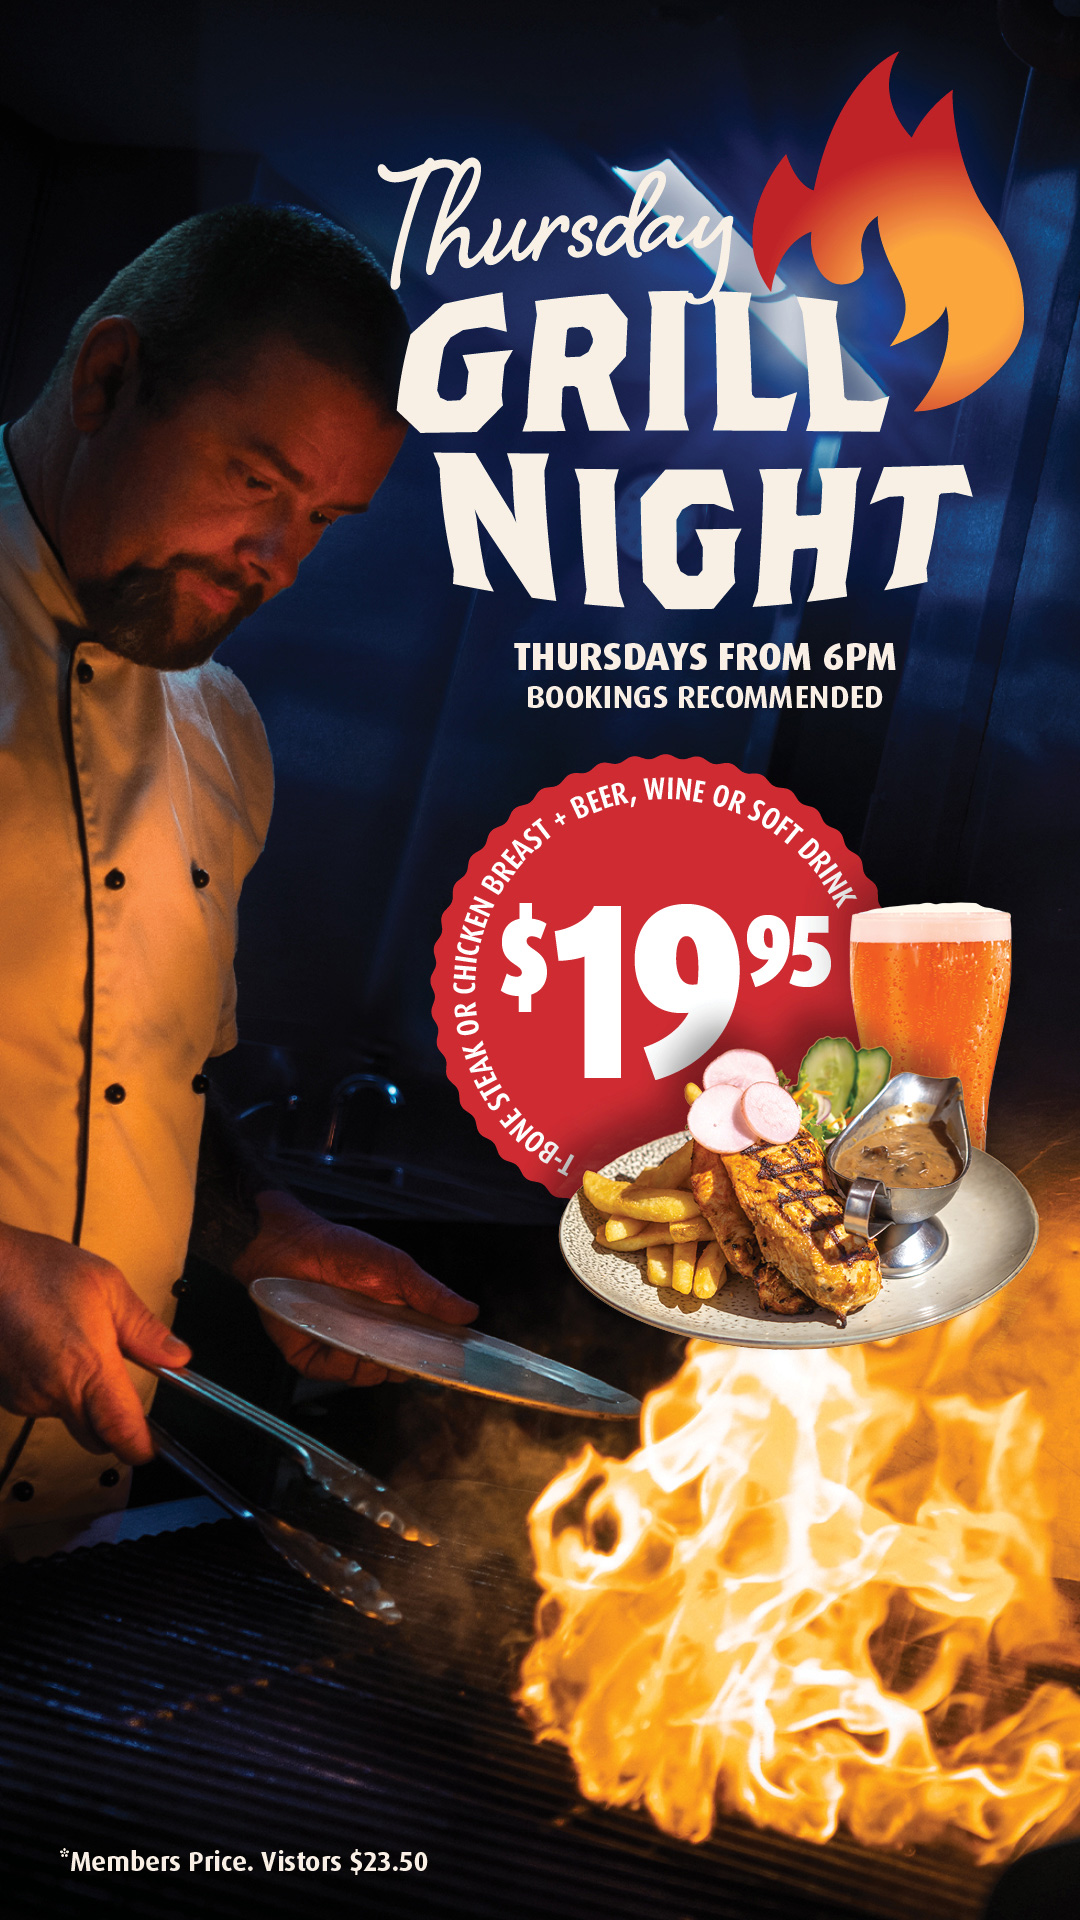 Hot grill and cold beers every Thursday!